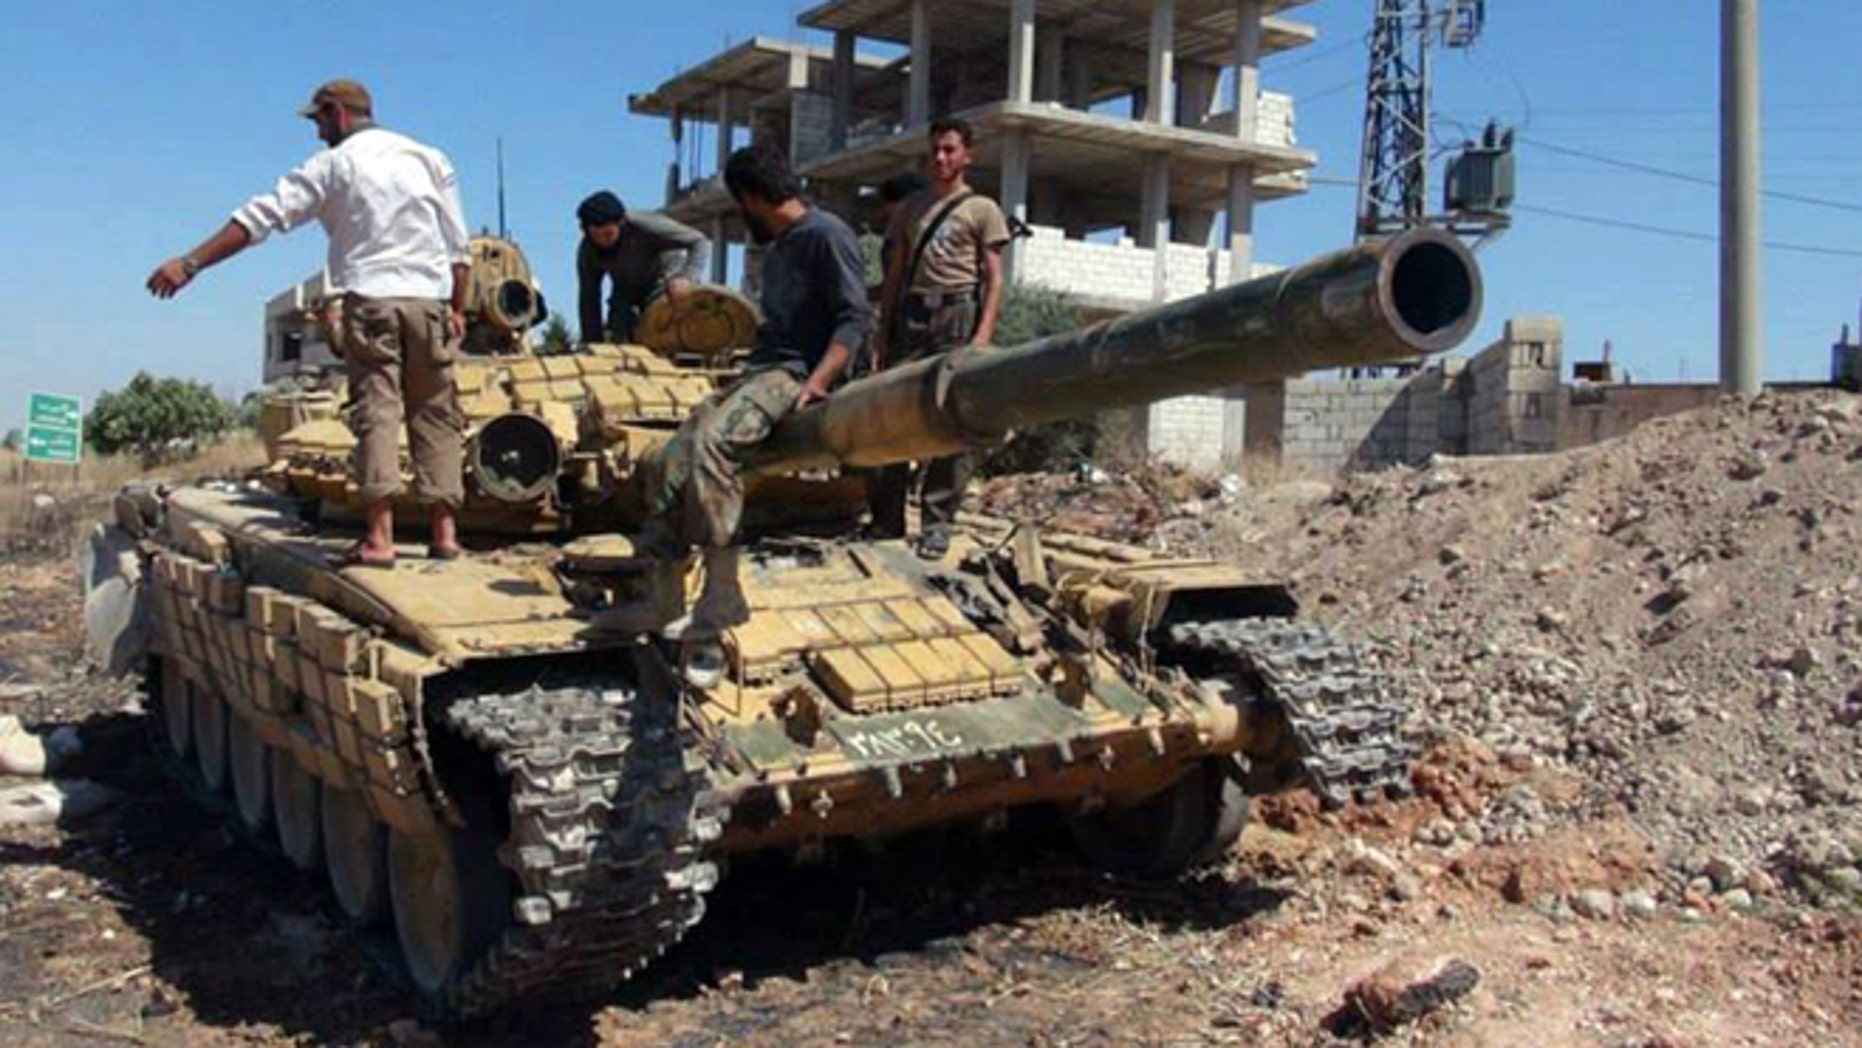 June 14, 2013: In this citizen journalism image provided by Edlib News Network, ENN, Syrian rebels stand on top of a tank they took after storming the Iskan military base in Idlib province, northern Syria. After weeks of fighting the rebels captured tanks as well as other vehicles and artillery in the area.